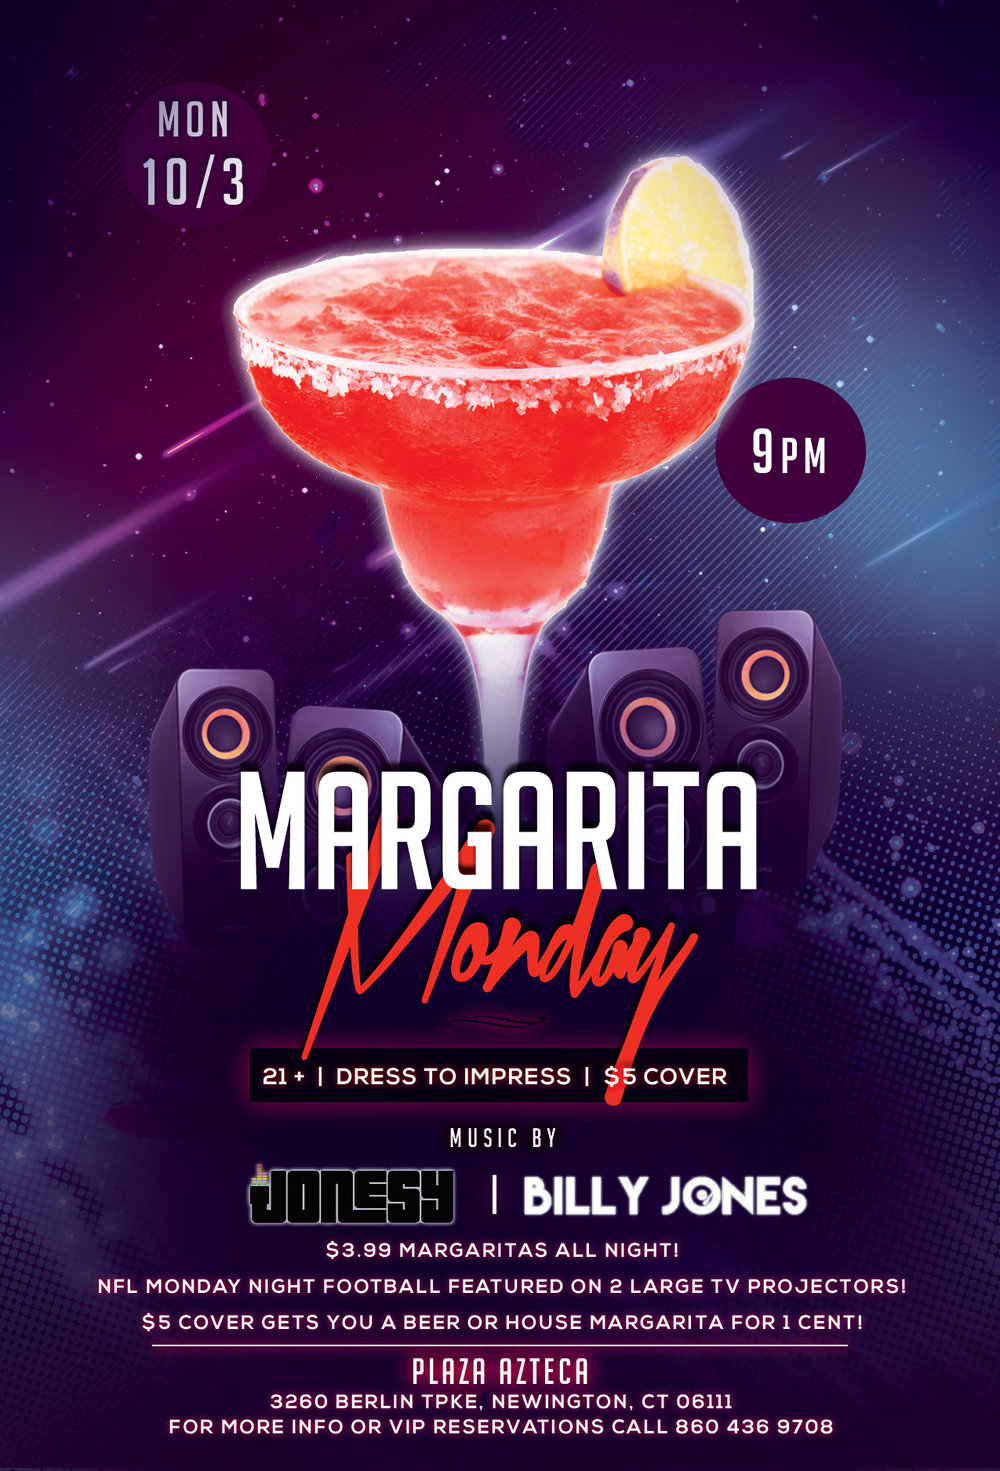 Monday, October 3rd   join me at Plaza Azteca in Newington, CT for Margarita Monday with music by Billy Jones & yours truly 9pm-close.  $3.99 Margaritas all night long!  Meet me there! $5 Cover.